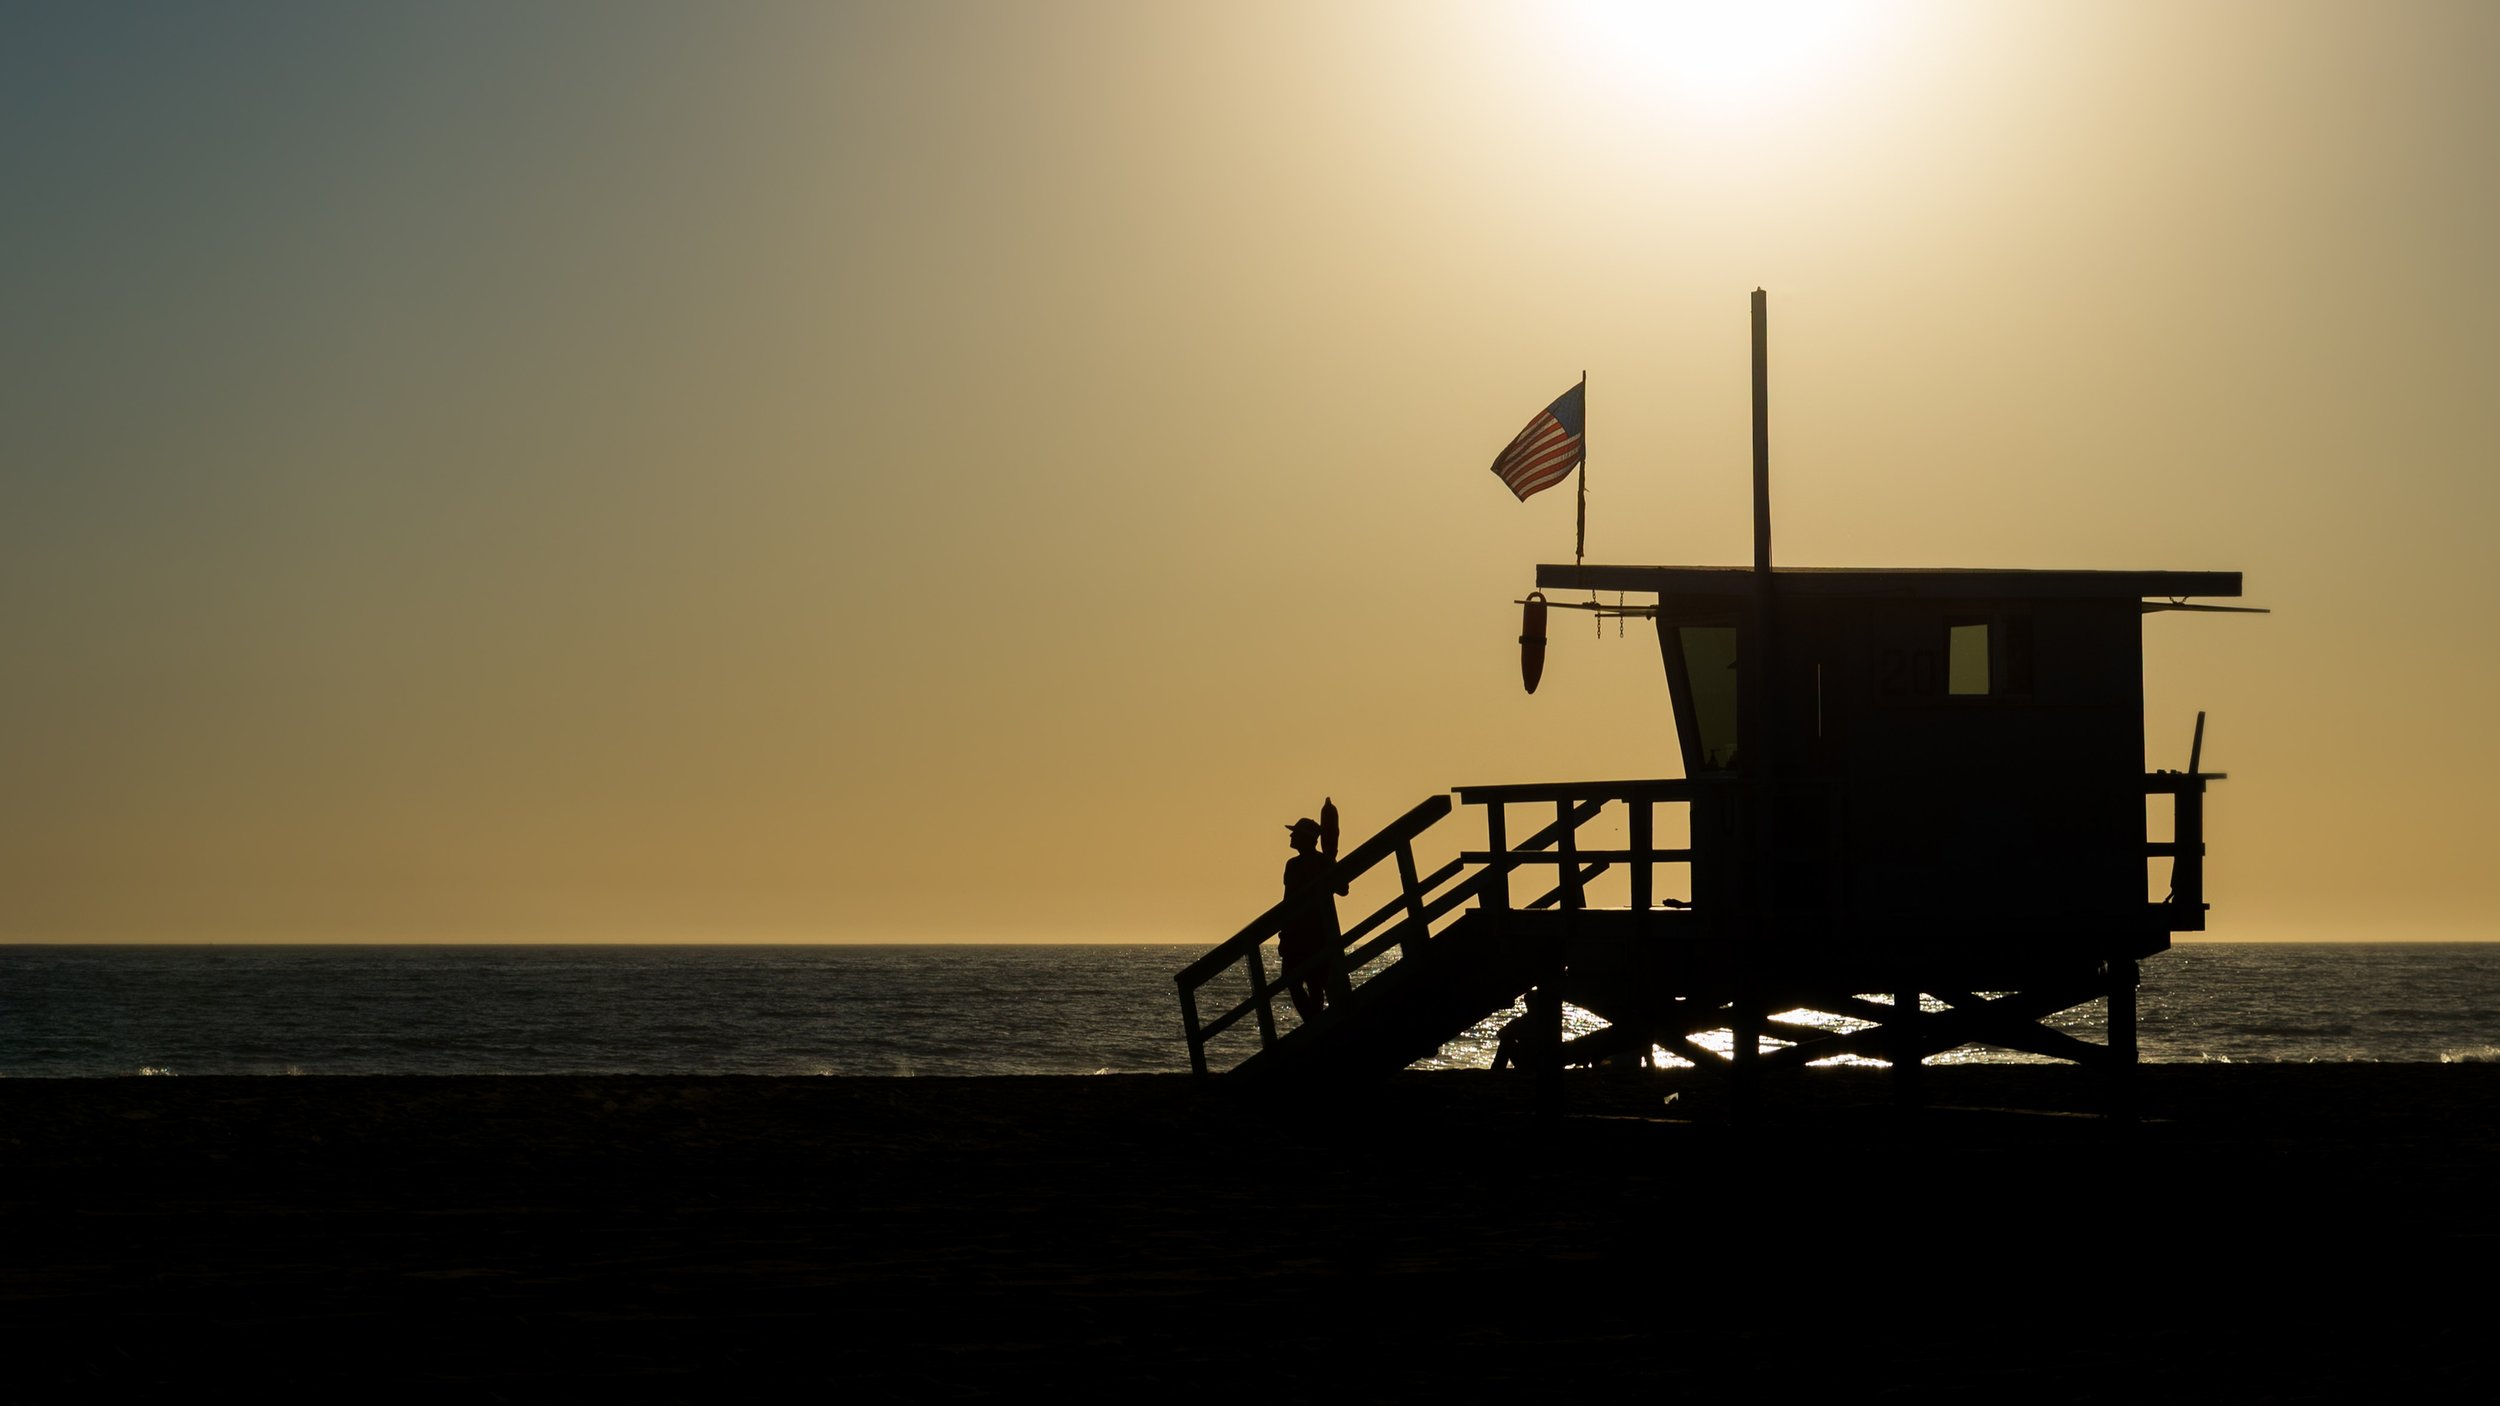 american-backlit-baywatch-745239.jpg